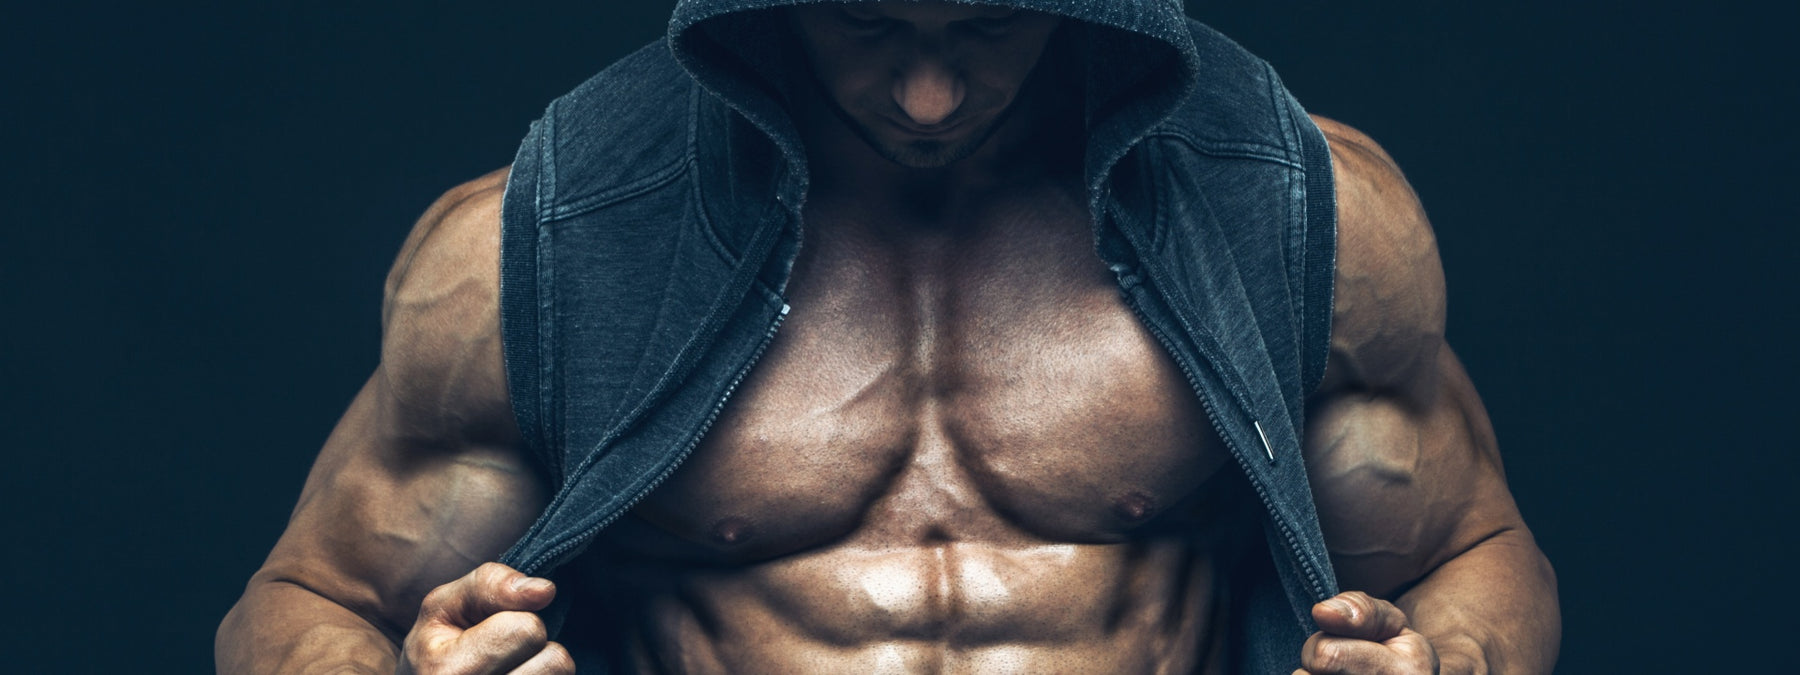 Savage 10 Bench Press Workout Routine